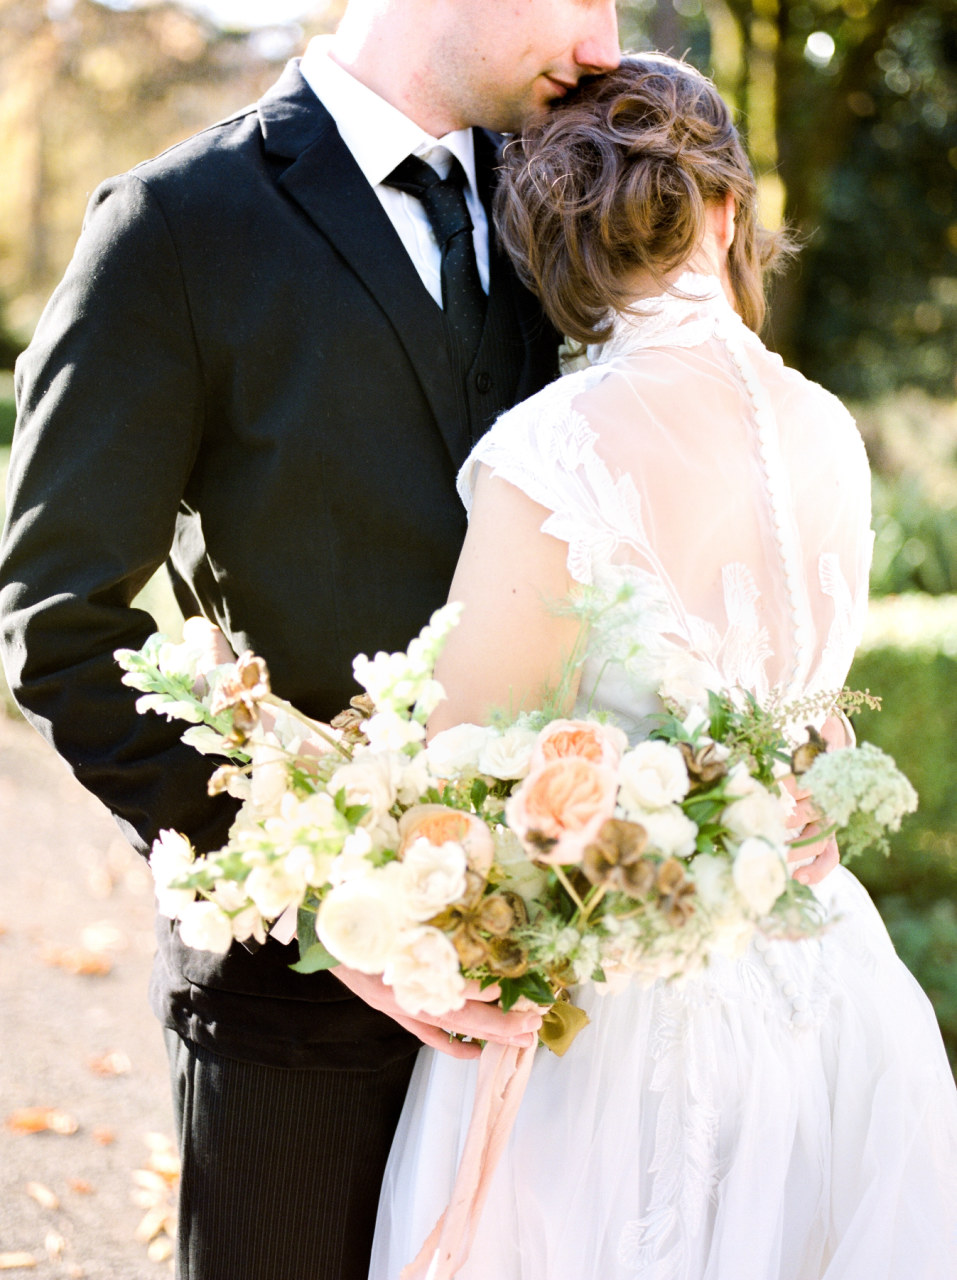 Timeless heirloom wedding inspiration. Photography by Mylyn Wood Photography. Paper Goods by Caitlin O'Bryant Design. Florals: Caroline Reusen Flowers. Models: Jens Behind the Lens. HAMU: Coreene Collins Hair. Styling Assistant: Jessica Staley.